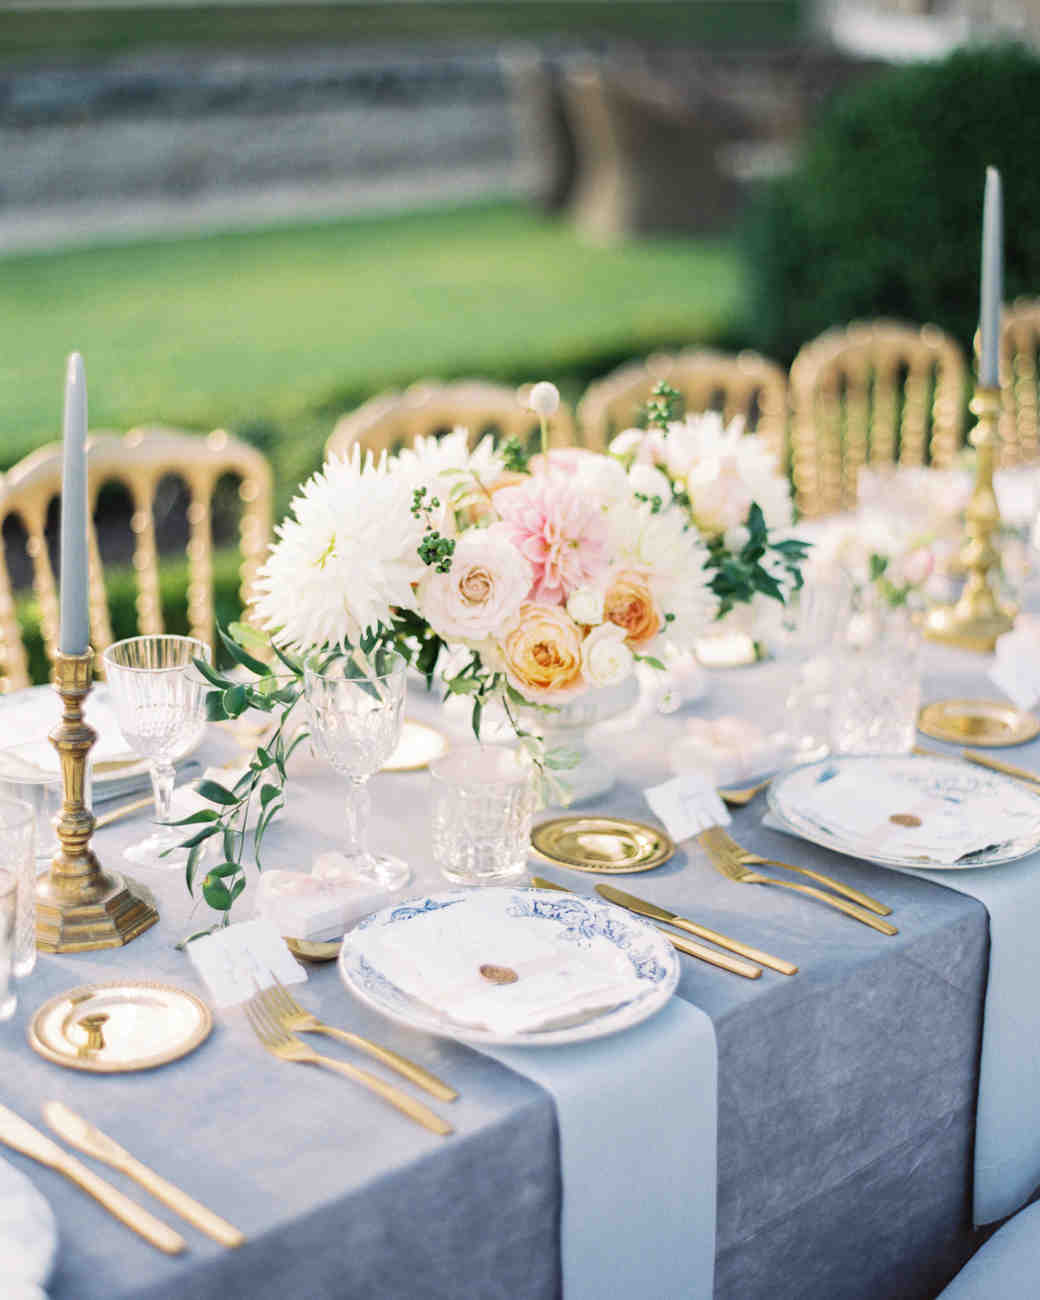 Wedding Flower Arrangements: 40 Of Our Favorite Floral Wedding Centerpieces